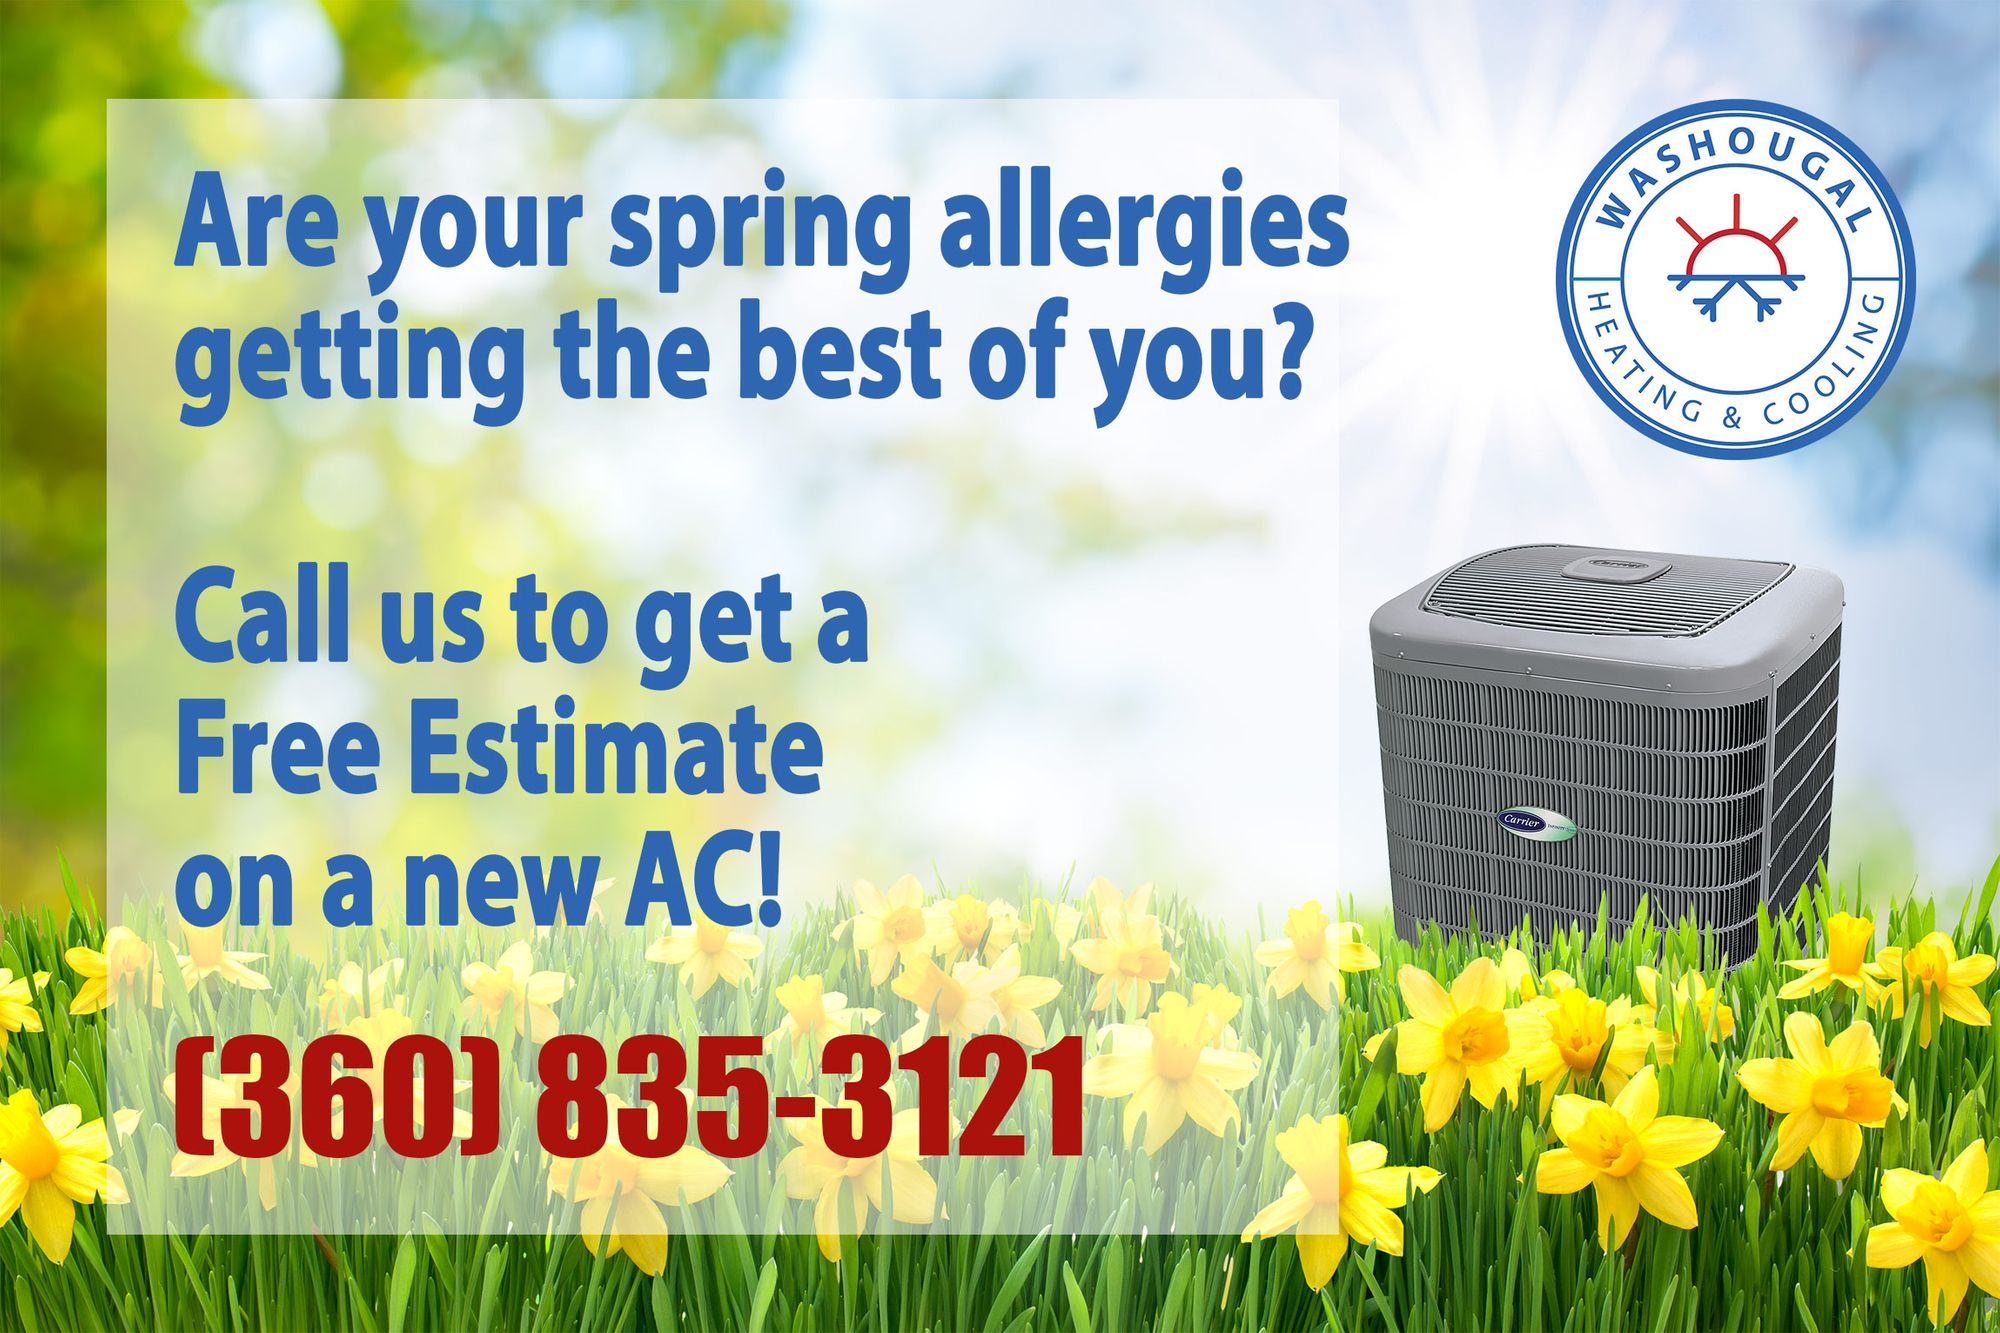 Don T Let Your Allergies Win Let Us Help You Make Sure Your